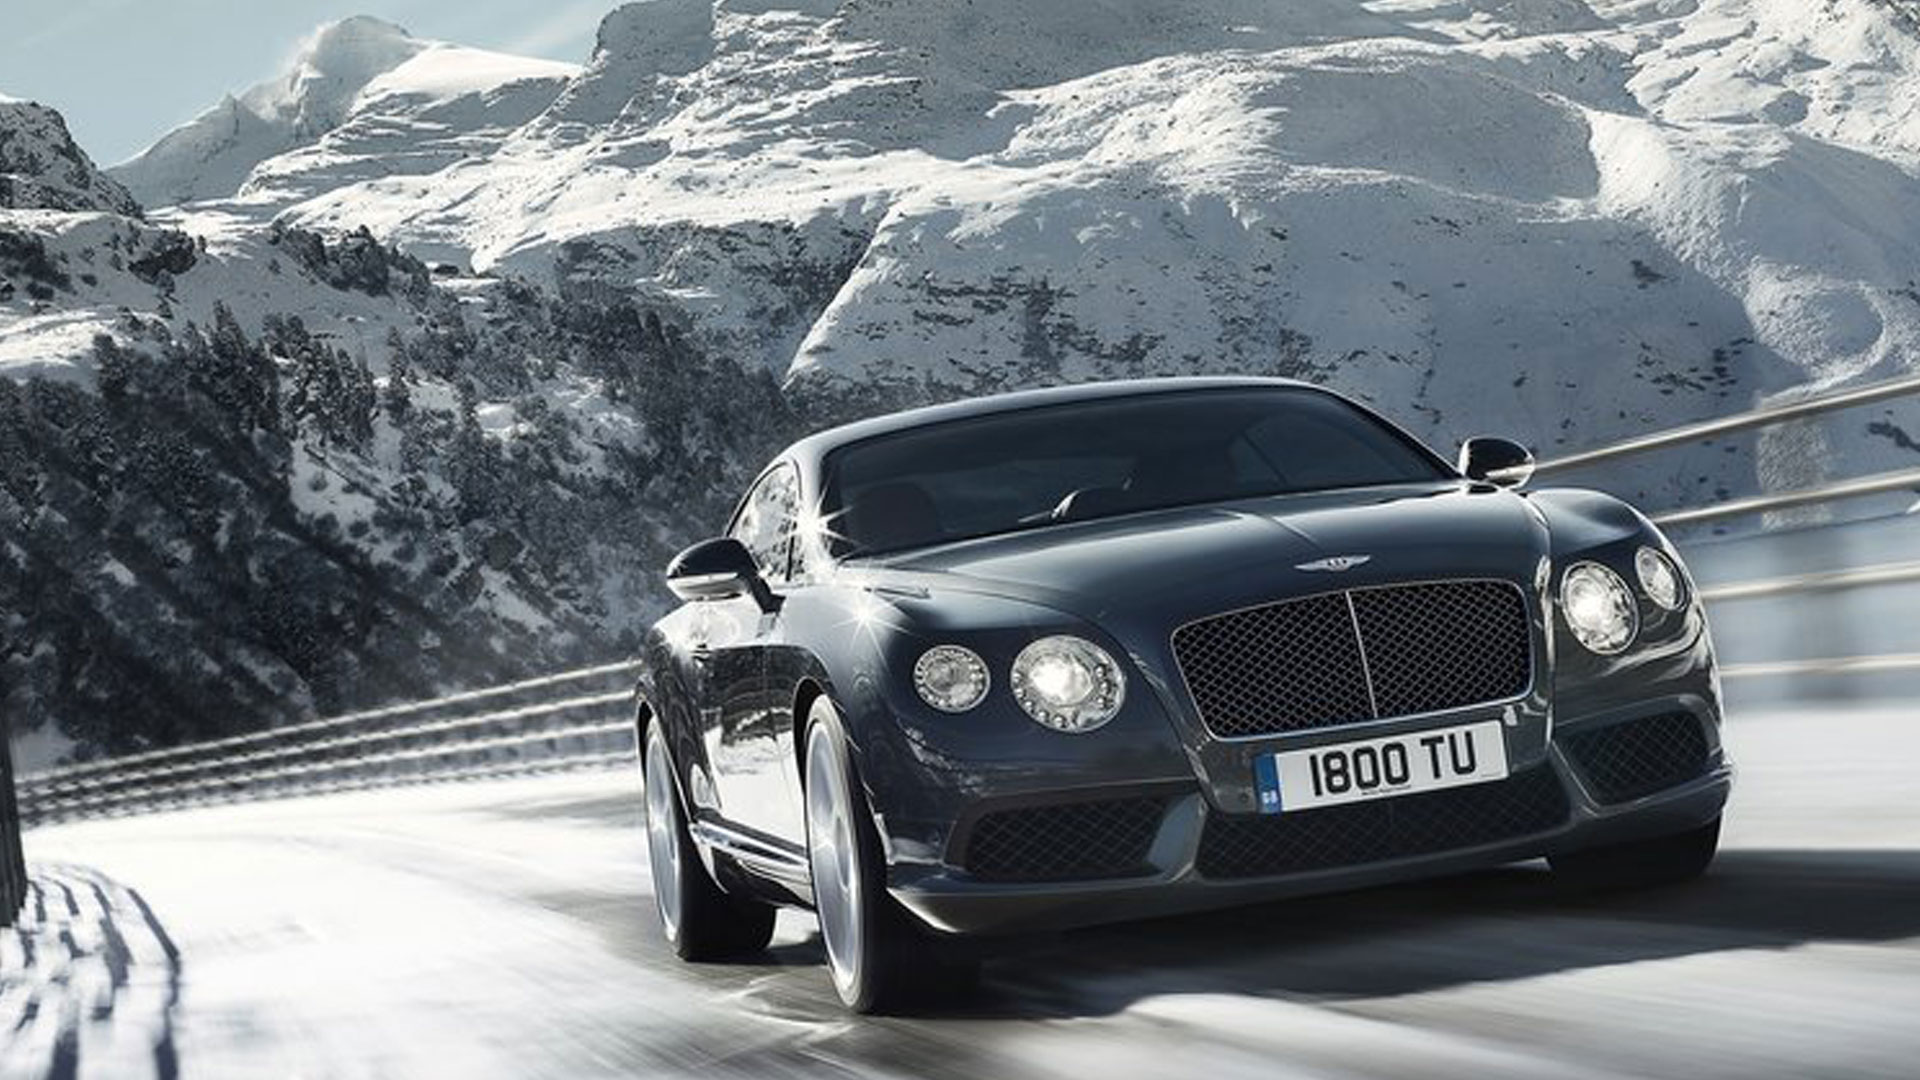 bentley continental gt wallpapers hd full hd pictures